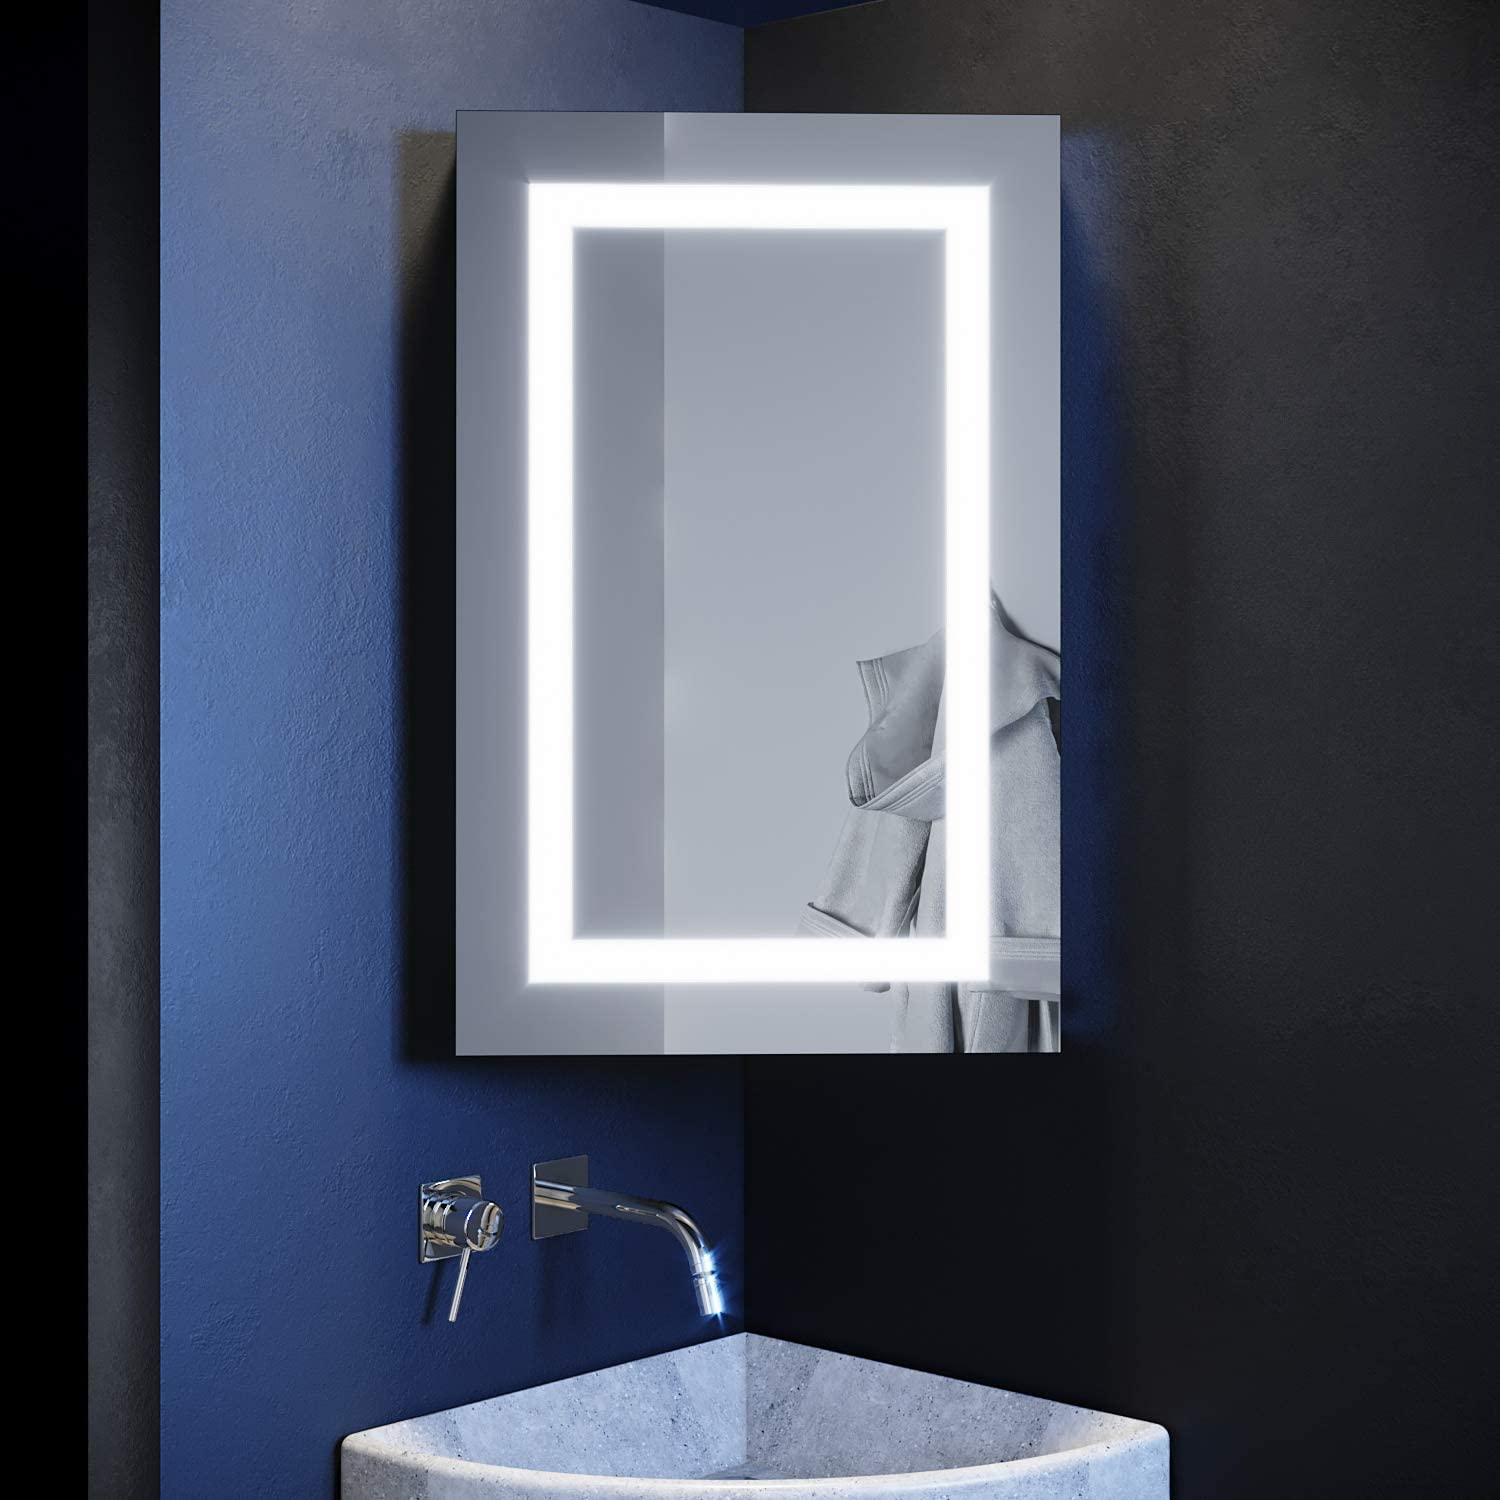 Elegant Illuminated Bathroom Corner Mirror Cabinet With Lights Wall Mounted Stainless Steel Frame Led Bathroom Mirror With Shelf 450 X 700mm Amazon Co Uk Kitchen Home